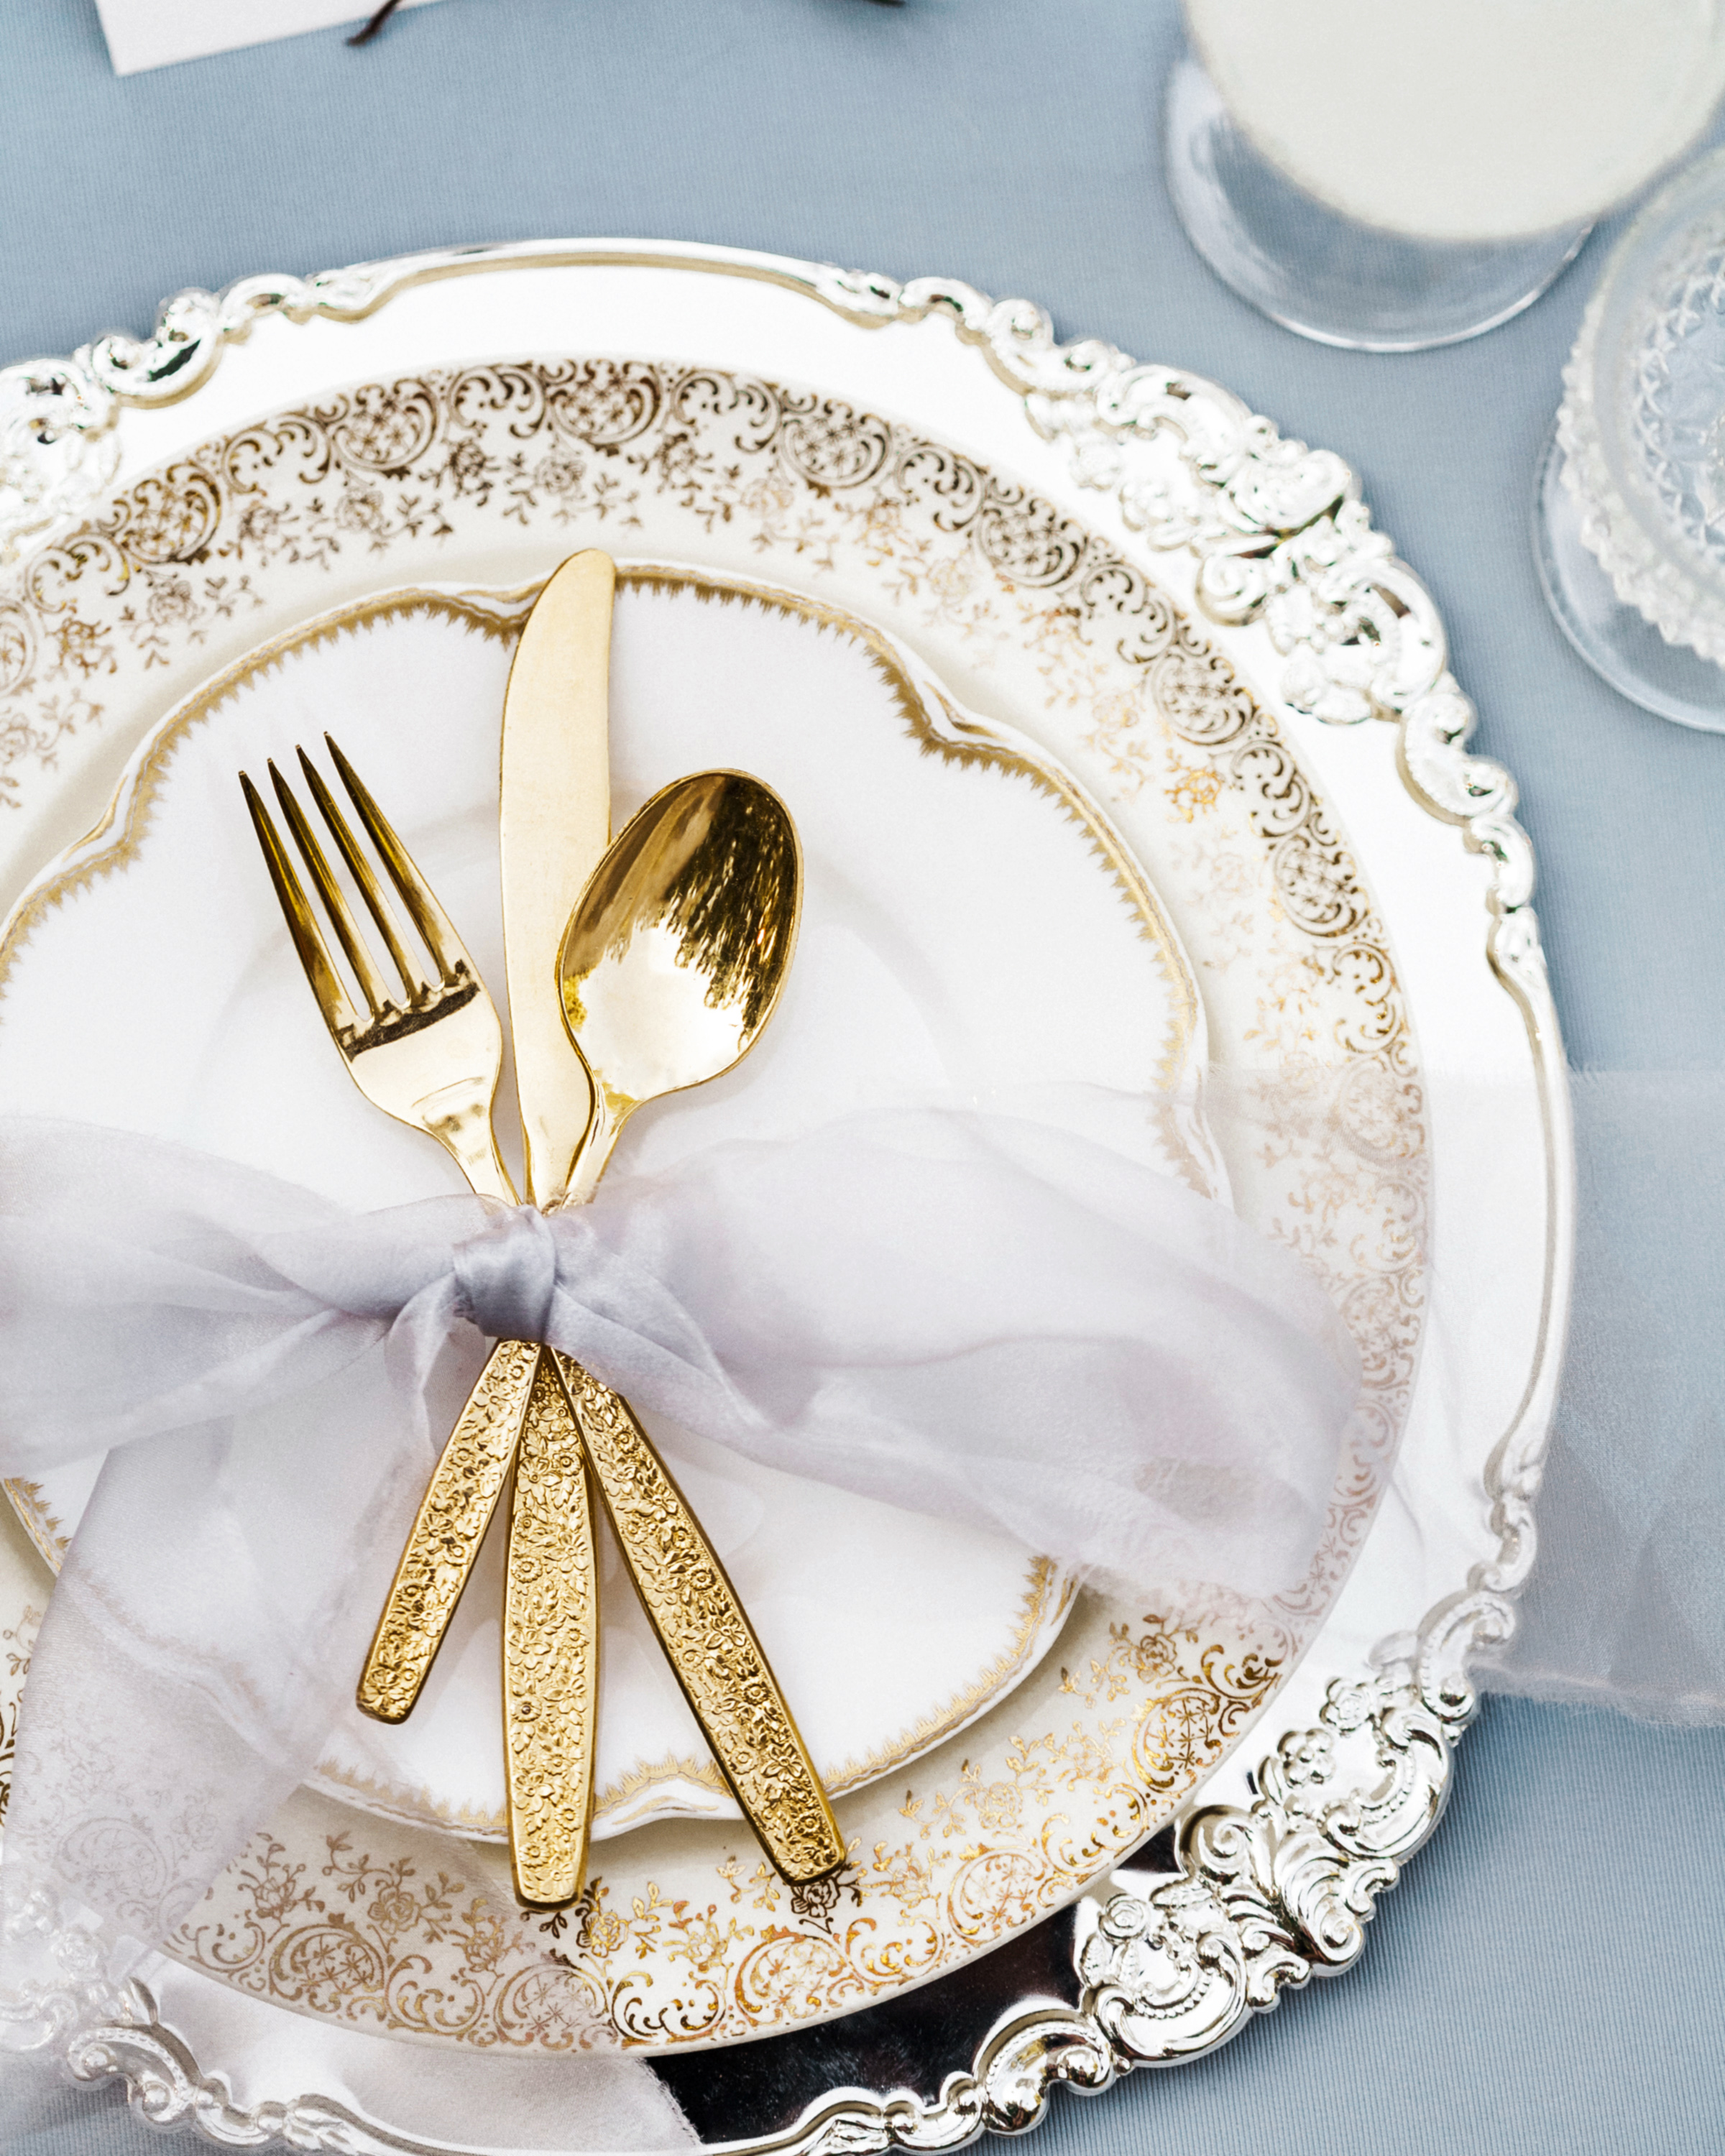 24 Metallic Wedding Ideas That Will Add a Little Shine to Your Big ...